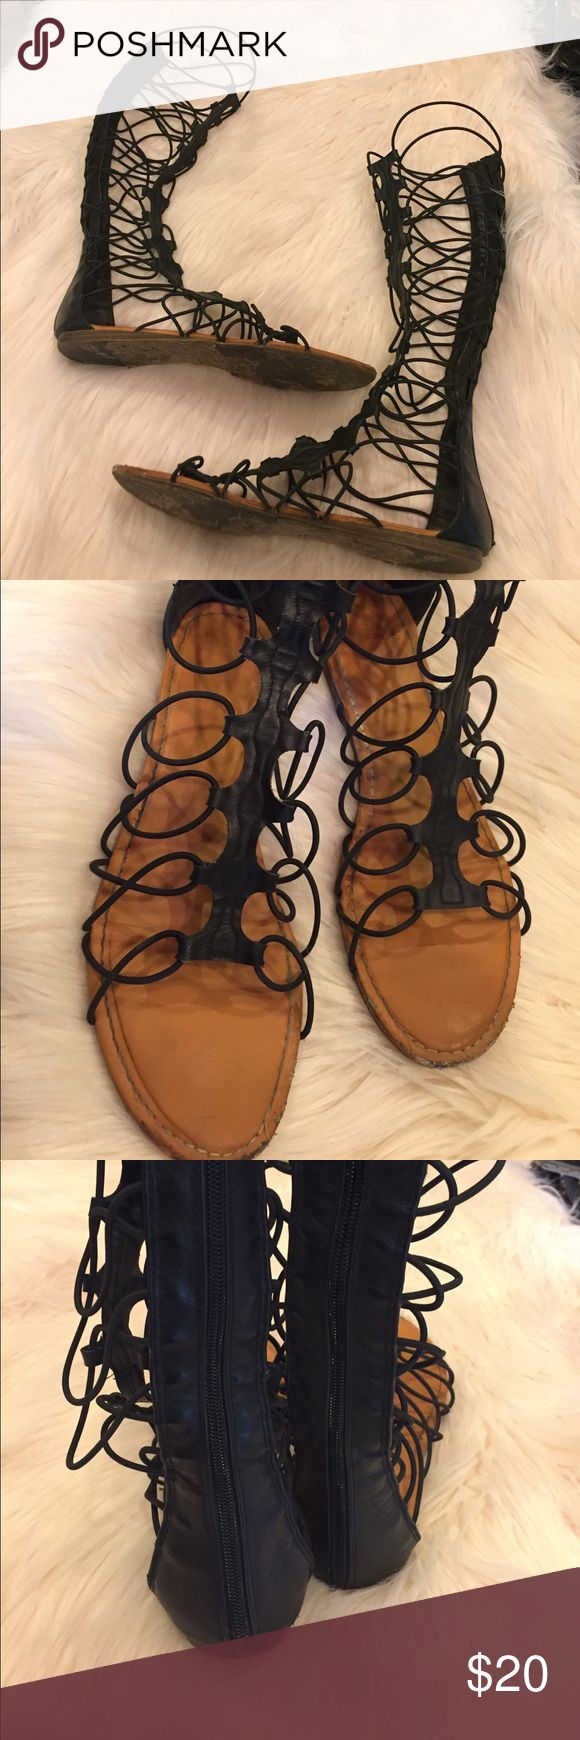 BAMBOO BLACK STRAPPY THIGH HIGH SANDALS EUC, minor scuffs near the toe area. The straps are adjustable and zipper running along the back of the sandals. Measurements: 15in long. BAMBOO Shoes Sandals